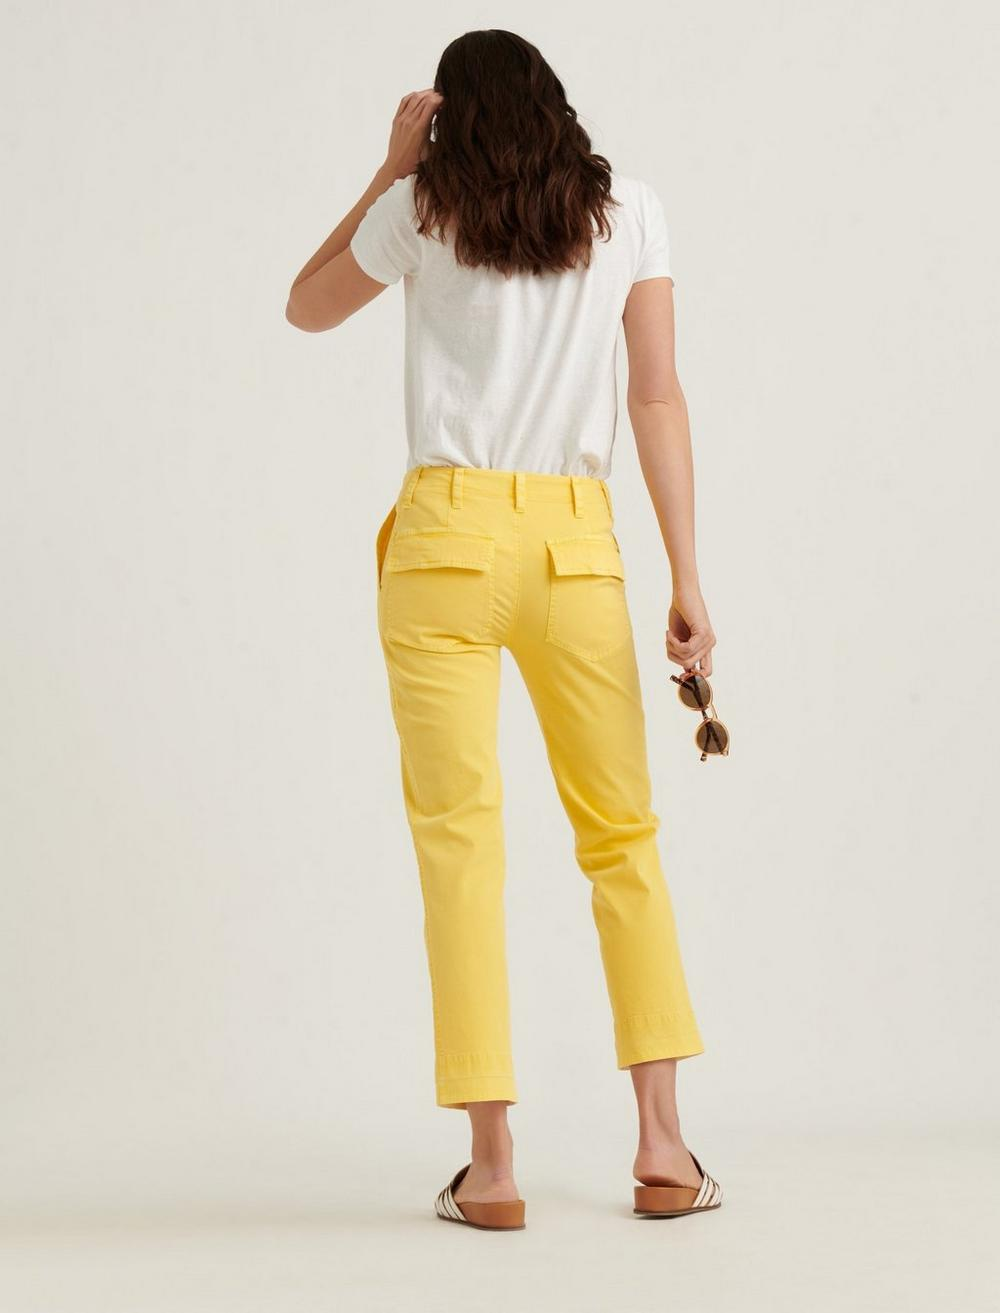 MID RISE UTILITY STRAIGHT PANT, image 3